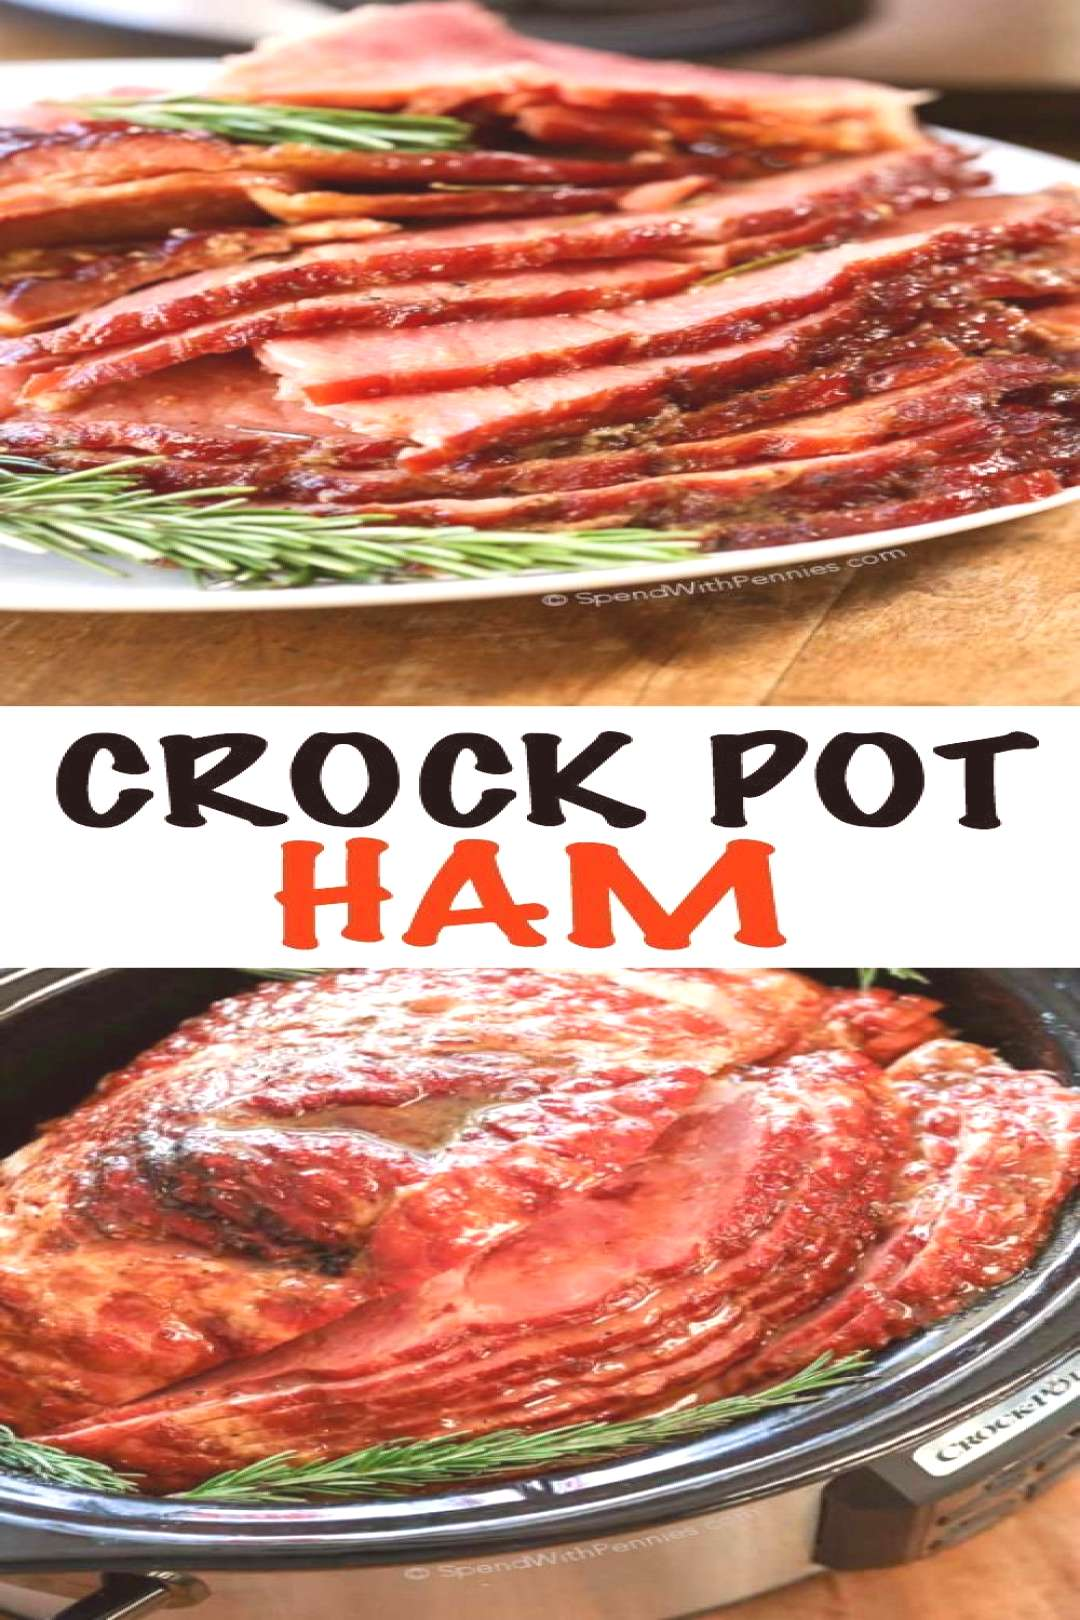 Crock Pot Ham (Video) Easy Holiday Meal! - Spend With Pennies - This easy Crock Pot Ham is the p